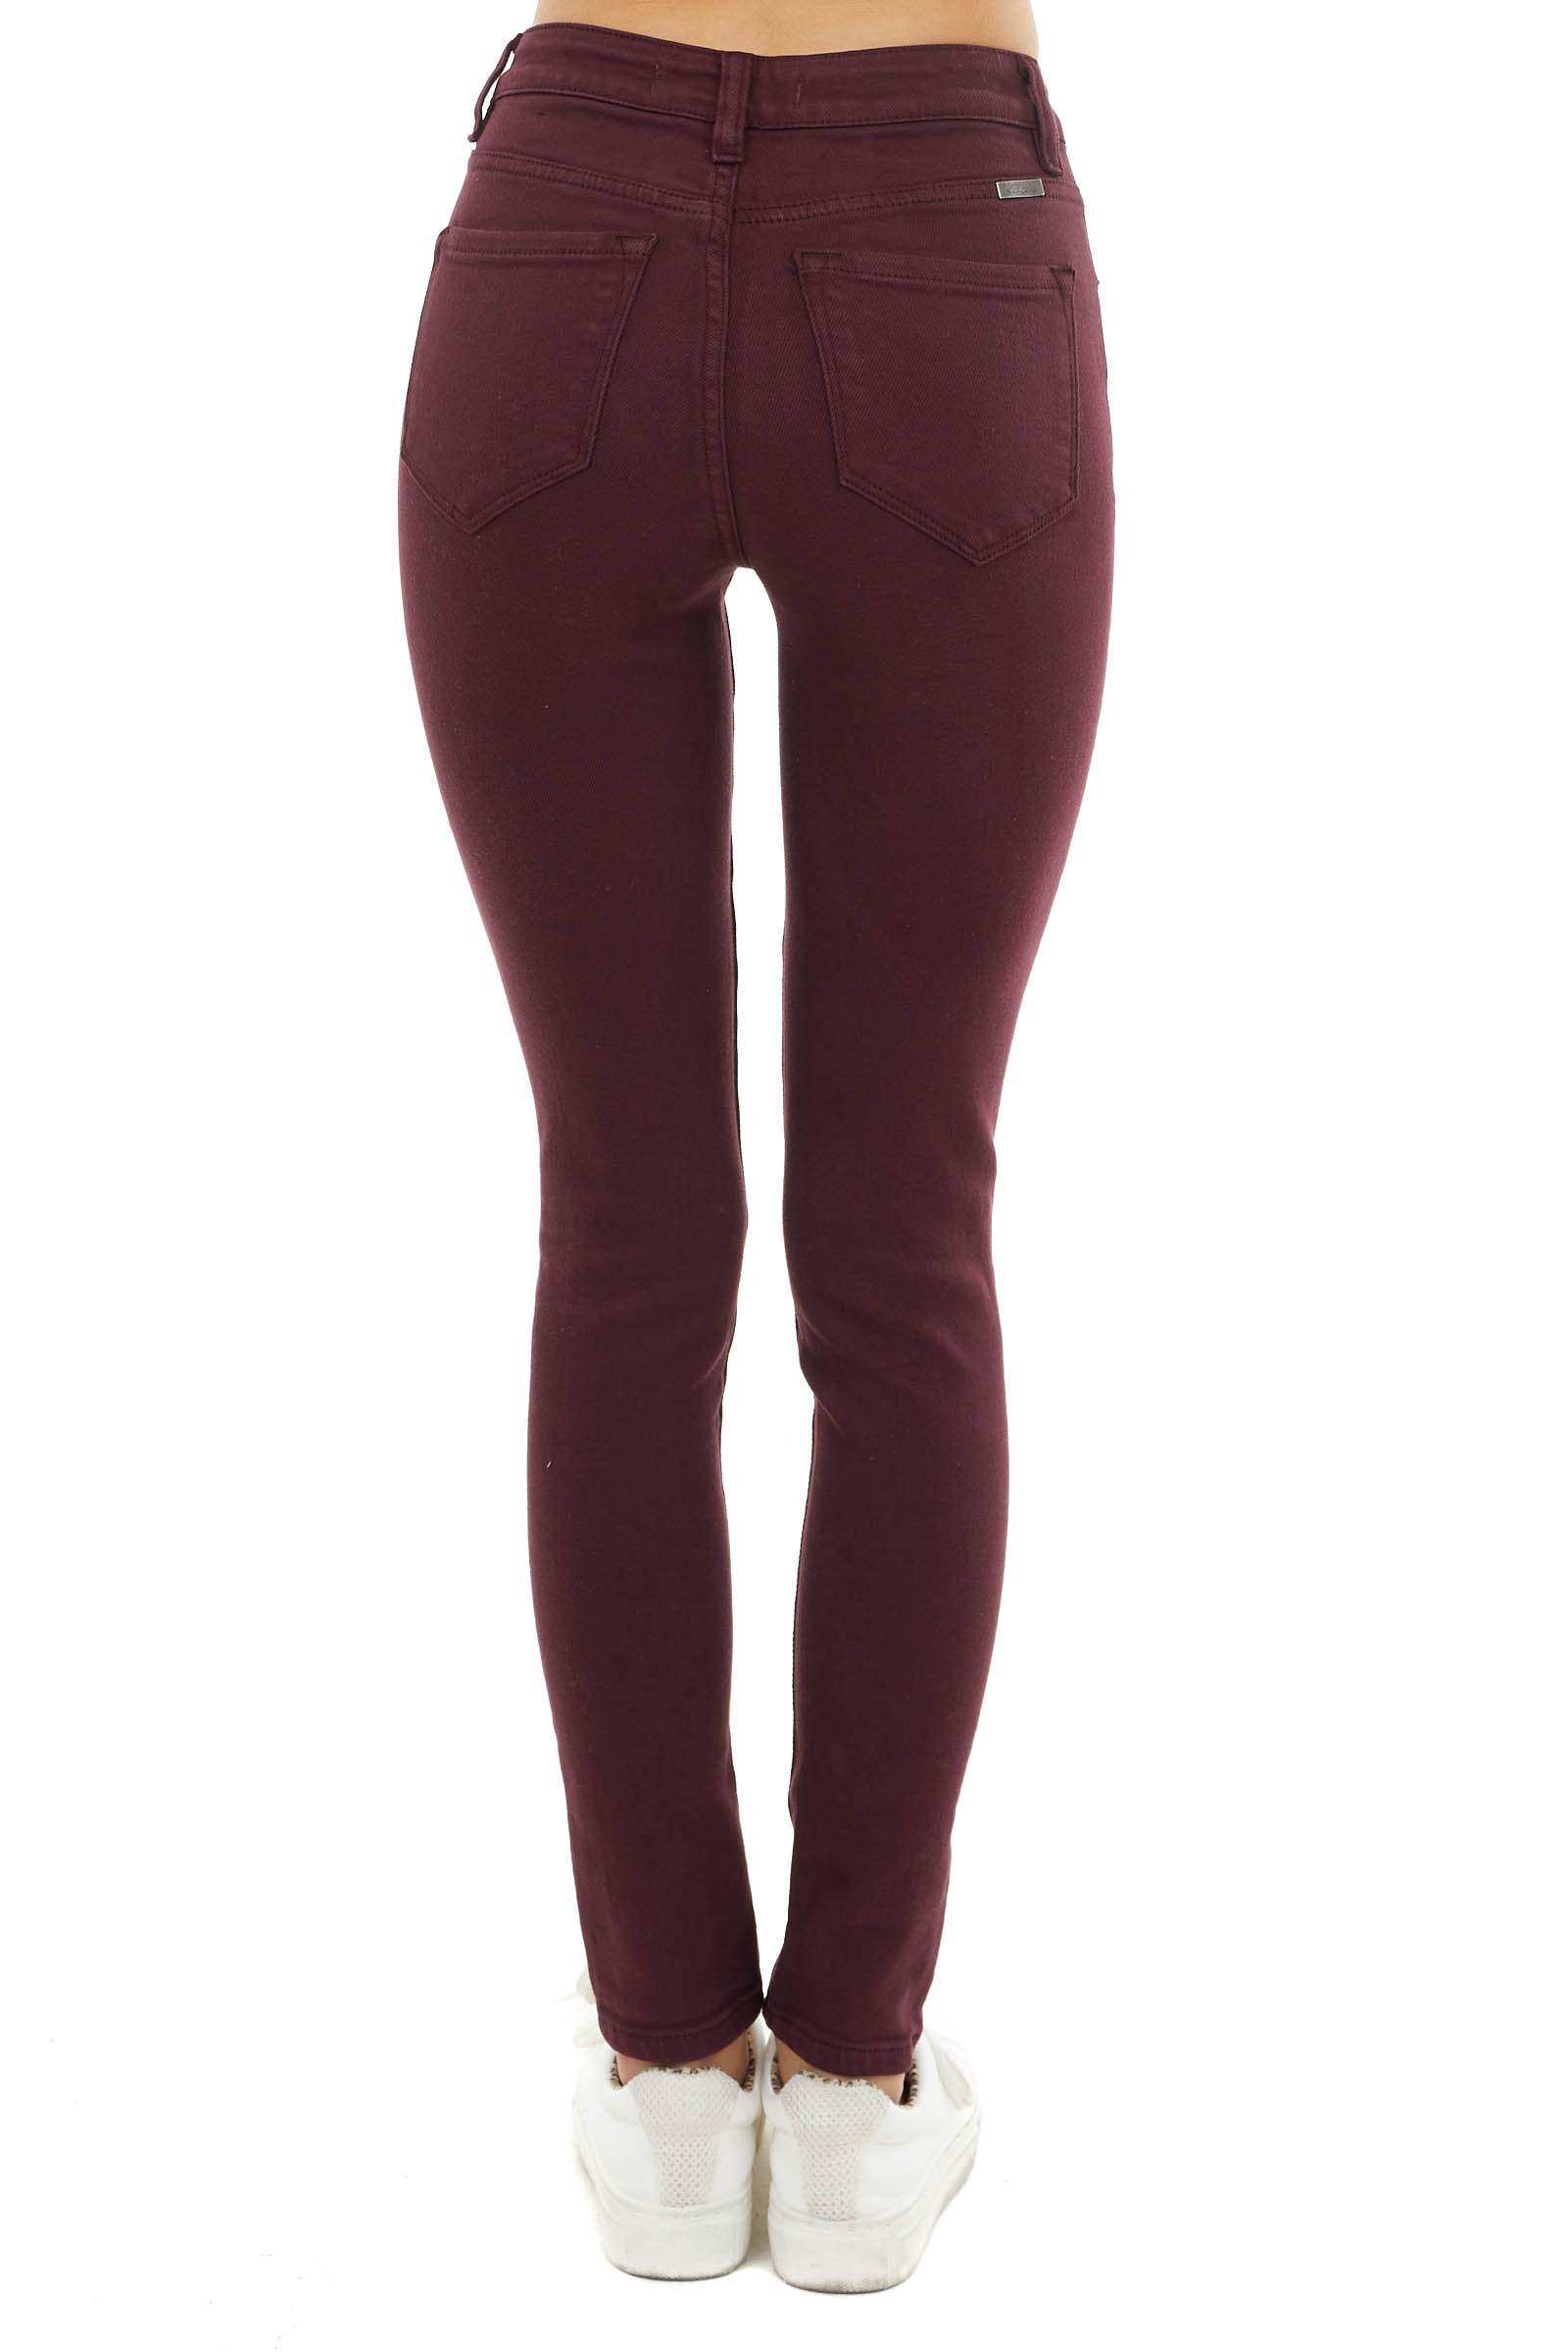 Mahogany High Rise Super Skinny Jeans with Pockets